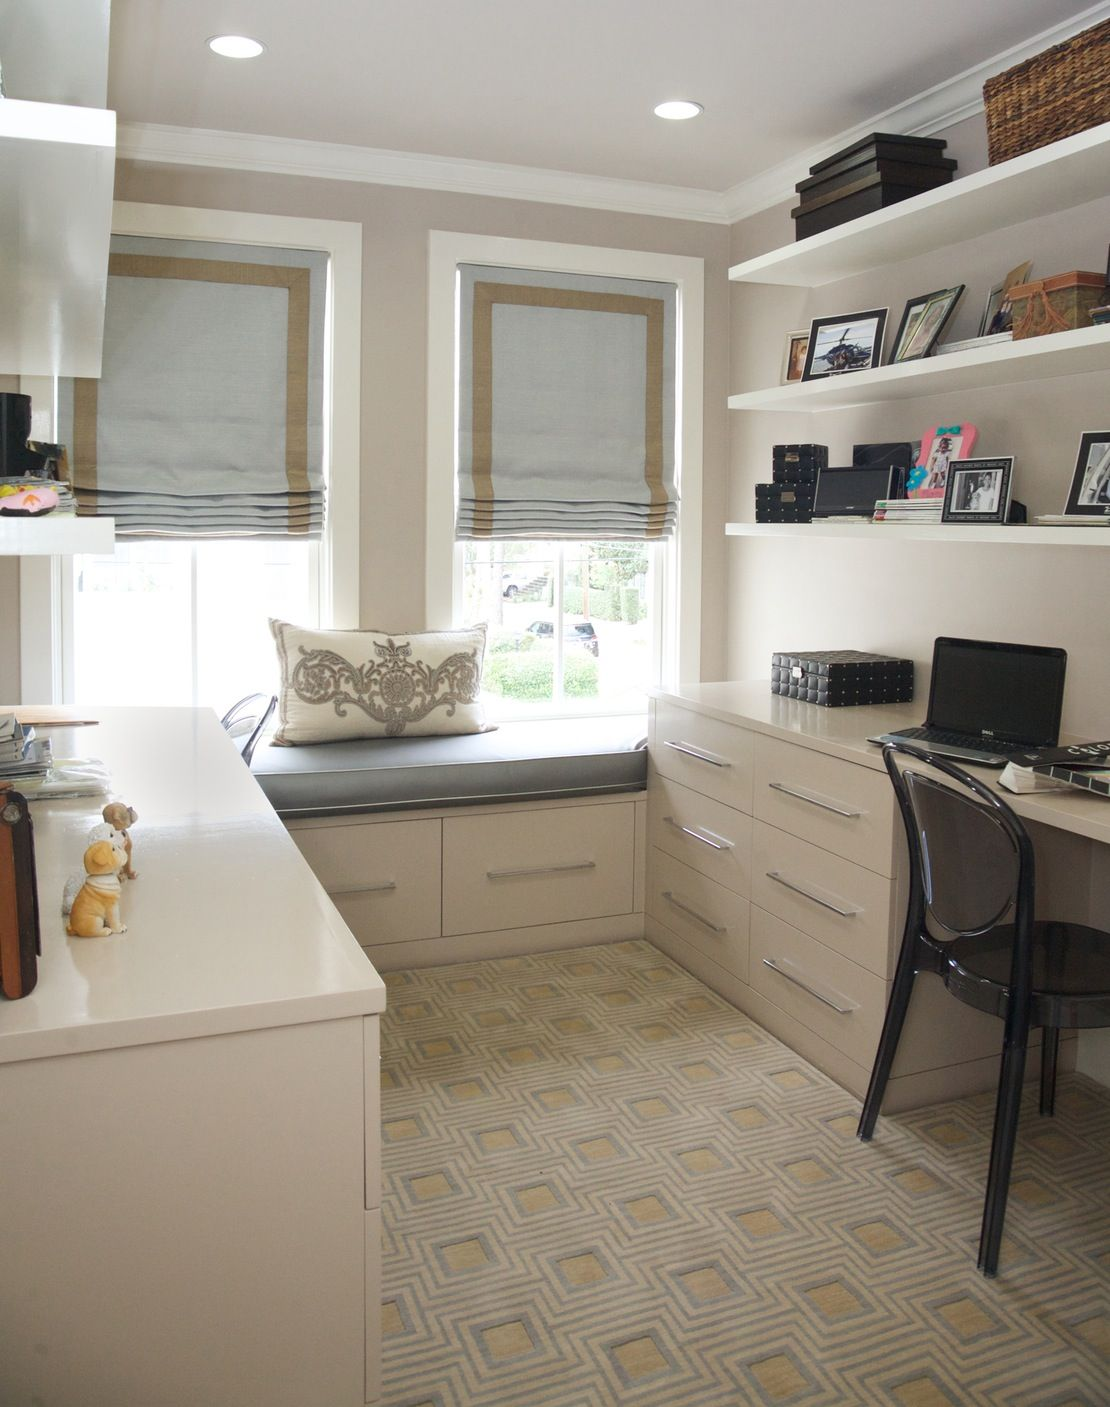 His and Hers Office by Eclectic Home | new house! | Pinterest ... Workspace Office Kitchen Ideas on kitchen microwave ideas, kitchen office organization ideas, kitchen space ideas,